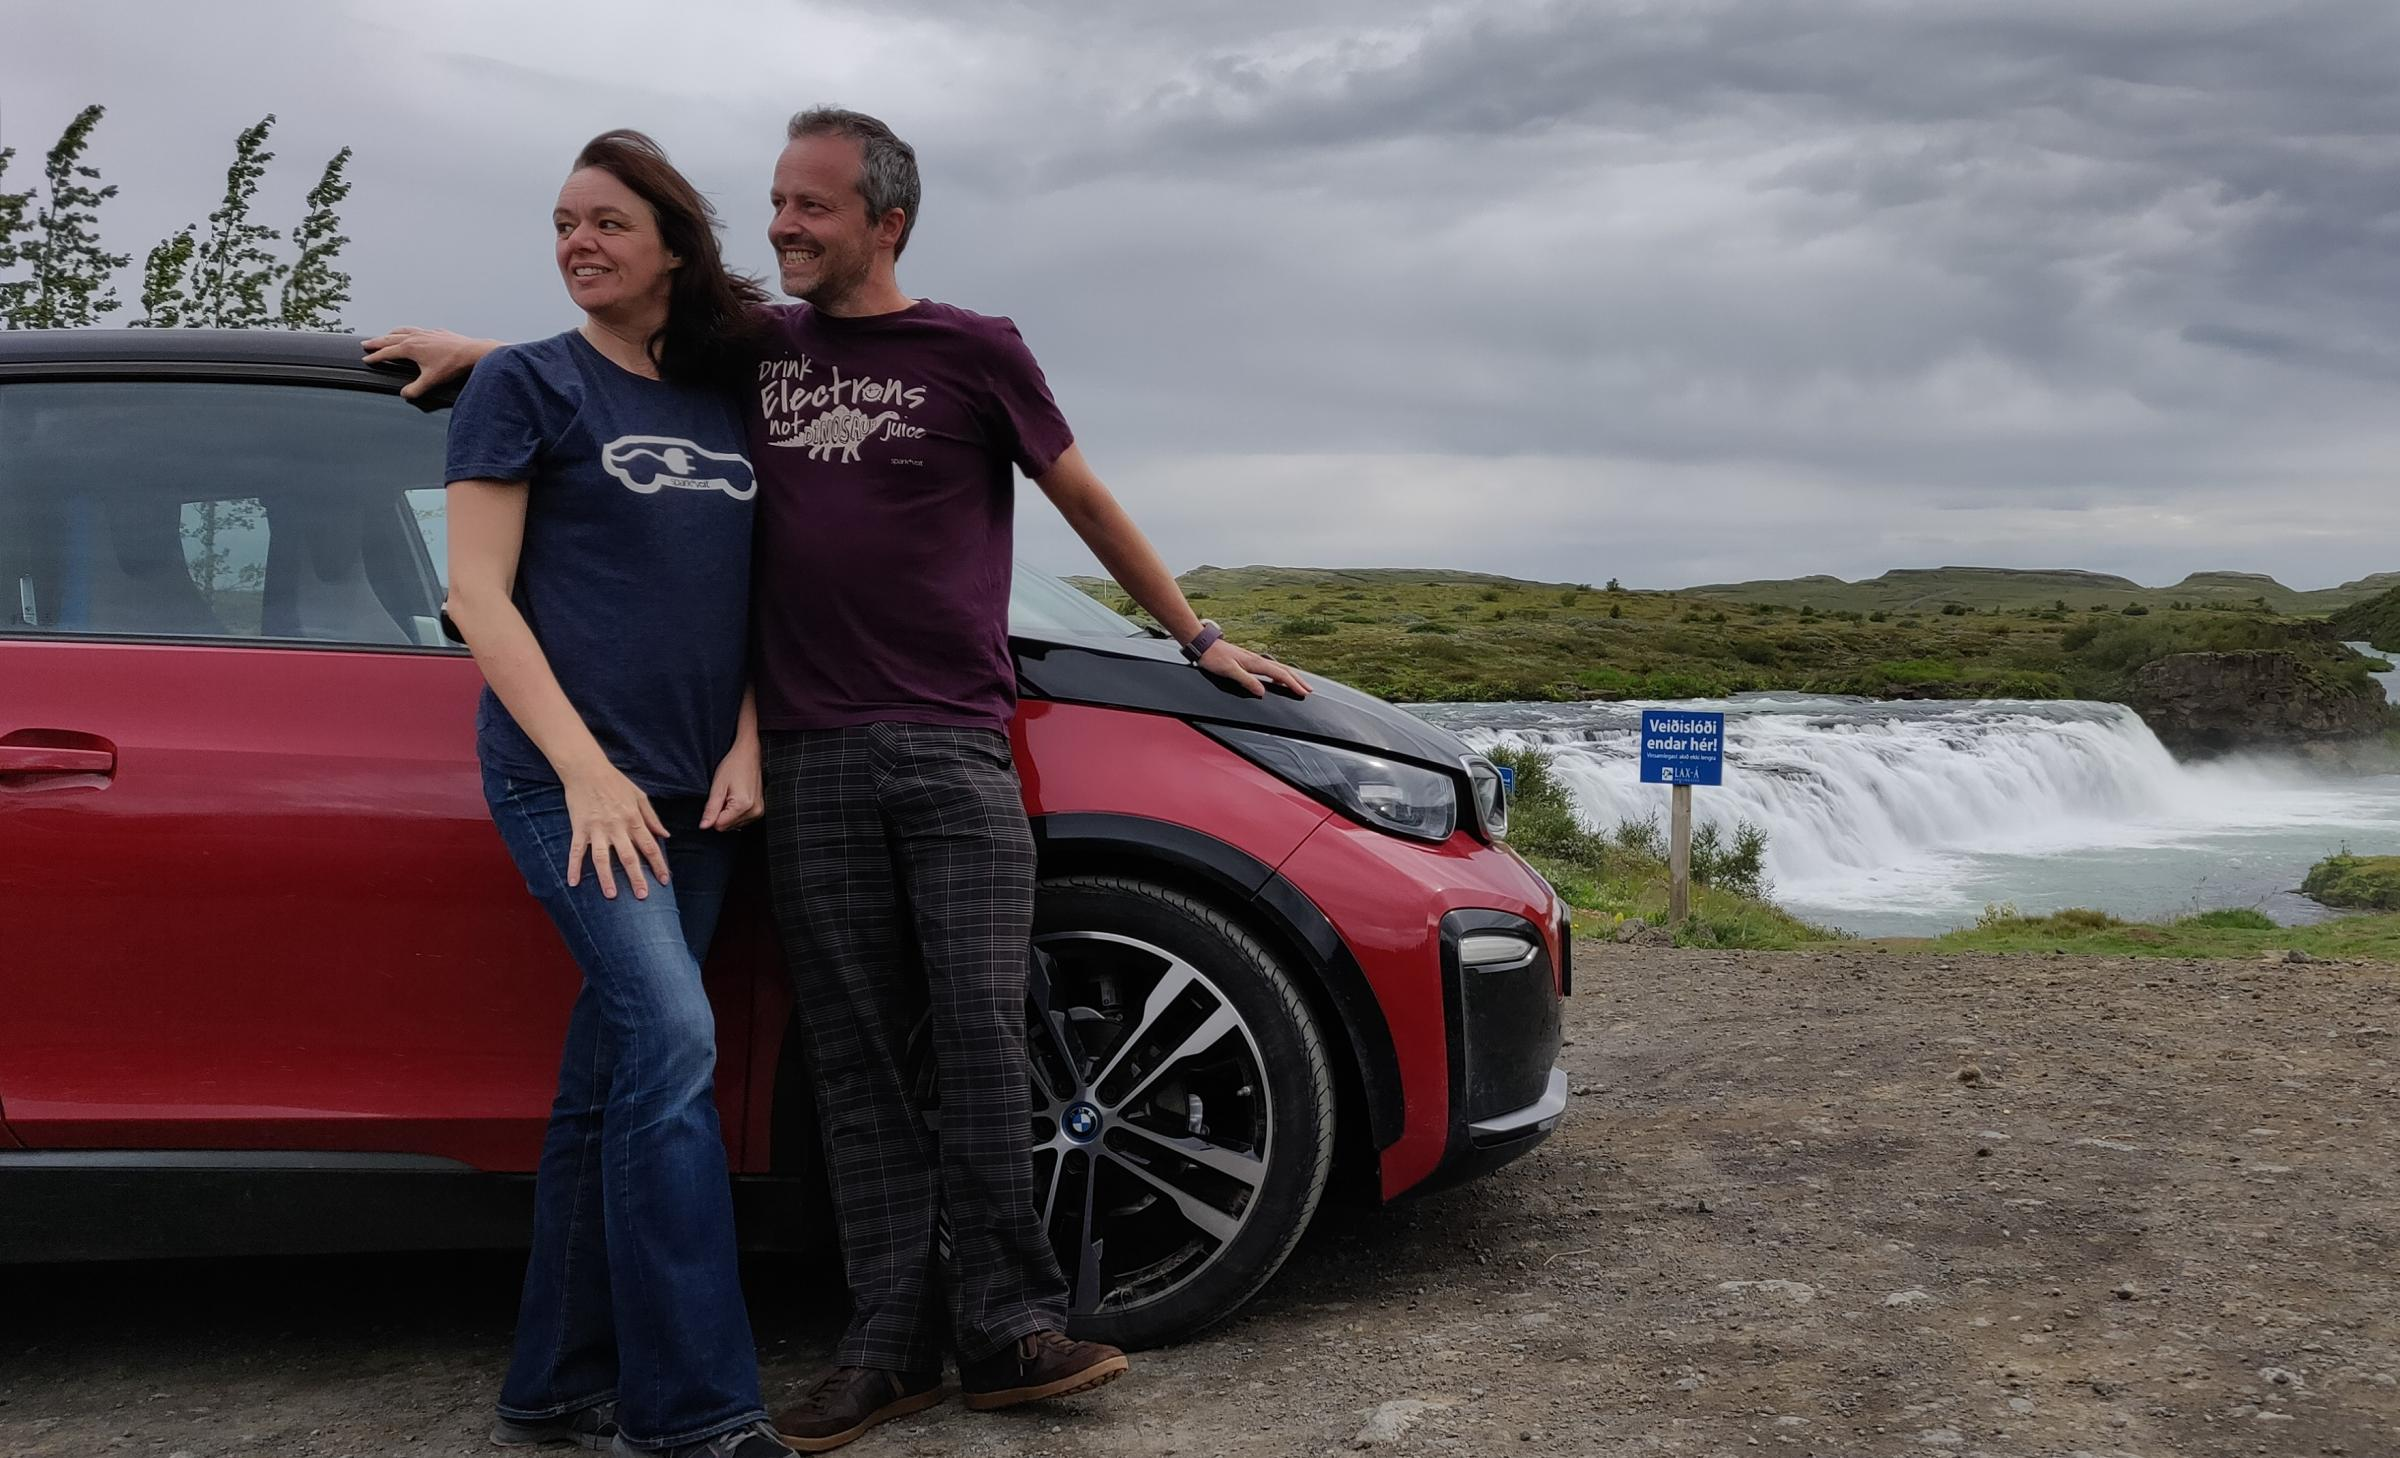 Natalie and Rob Carswell are believed to be the first couple from the UK to complete Icelands Route One in an electric car